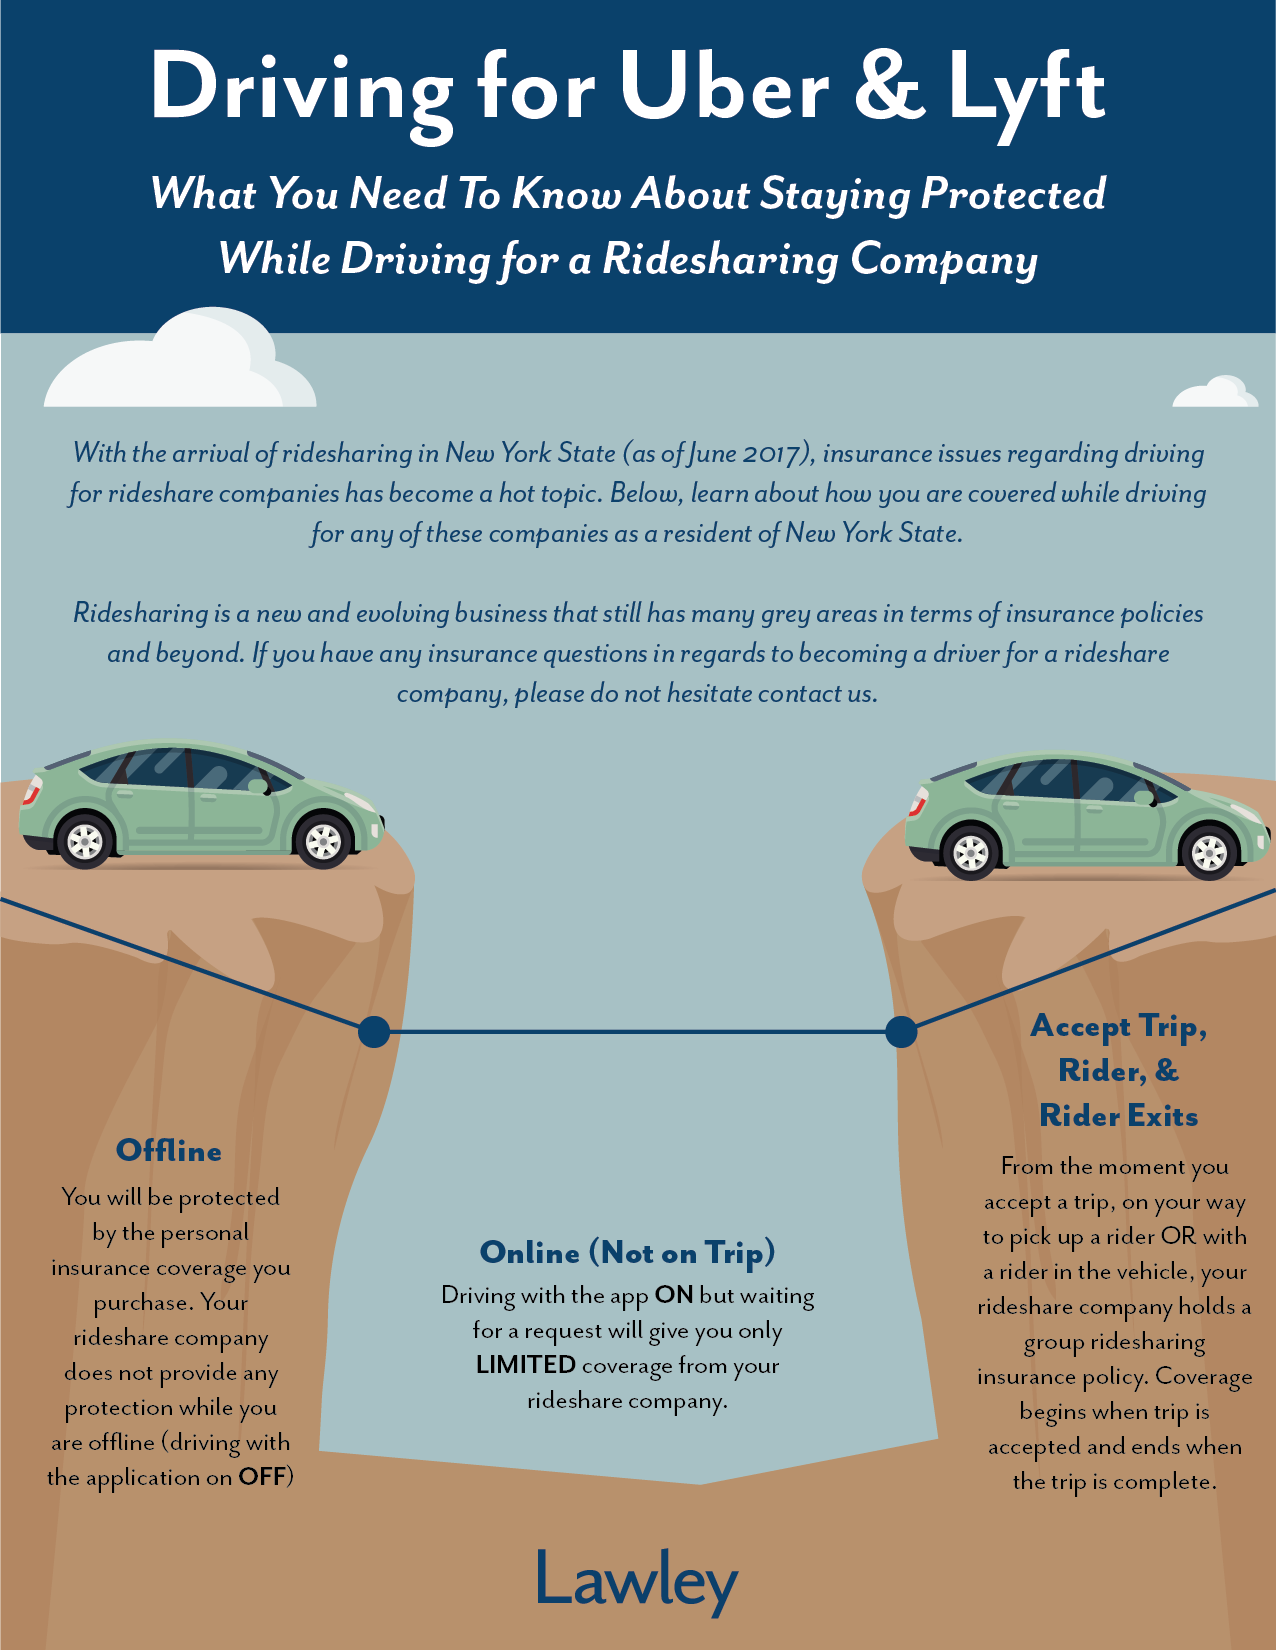 What's The Risk Of Driving For Uber Or Lyft?